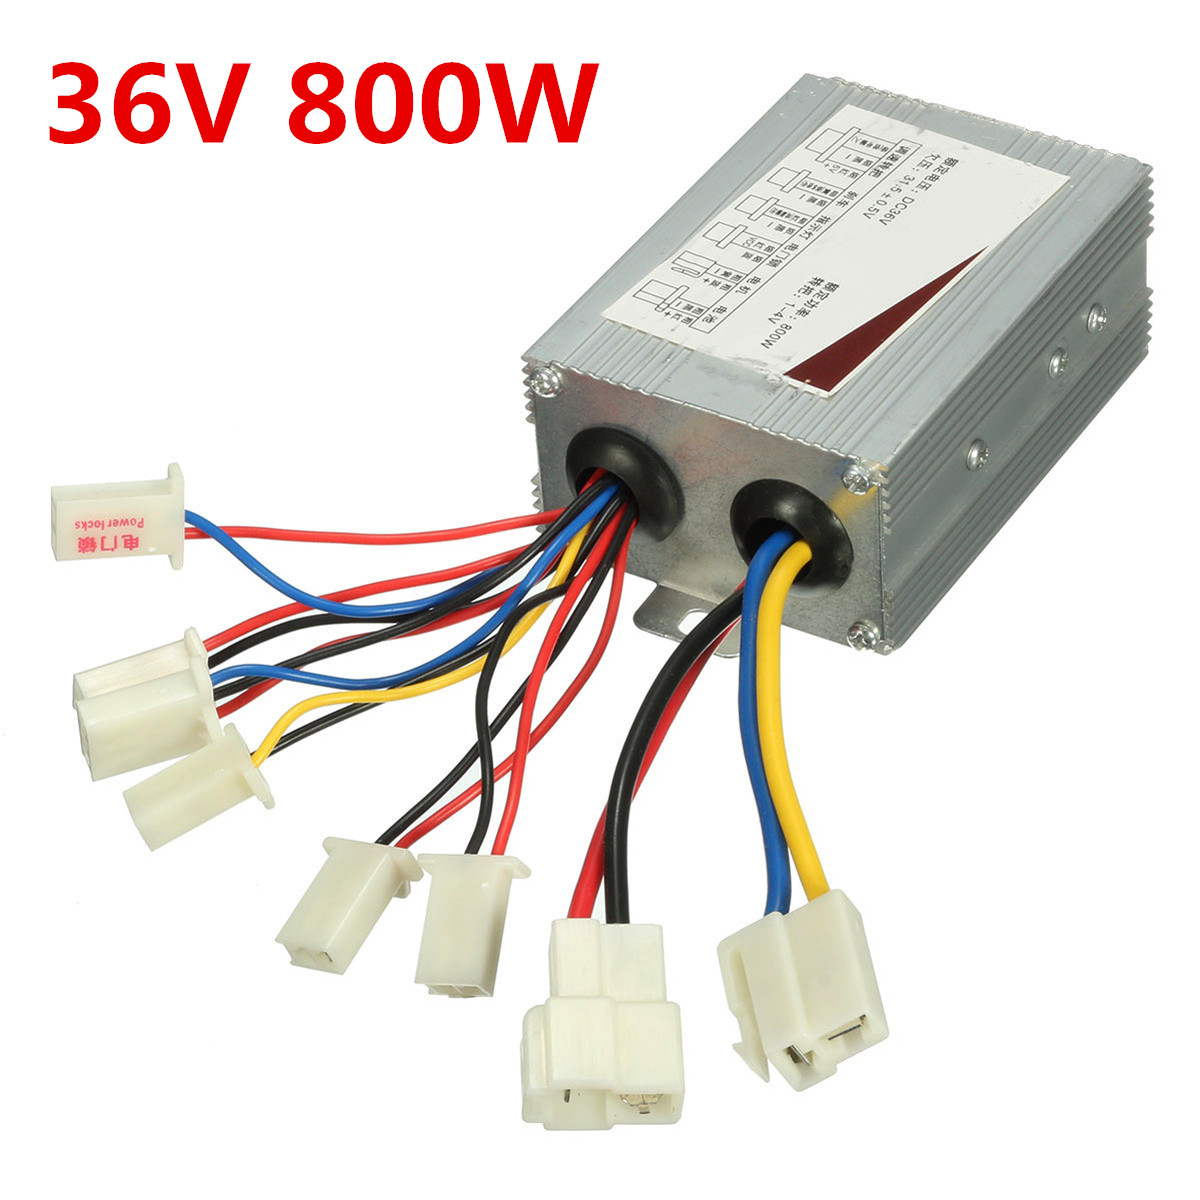 36V 800W DC Brush Motor Speed Controller for Electric Scooter Bicycle E-bike Motorcycle Accessories Parts36V 800W DC Brush Motor Speed Controller for Electric Scooter Bicycle E-bike Motorcycle Accessories Parts